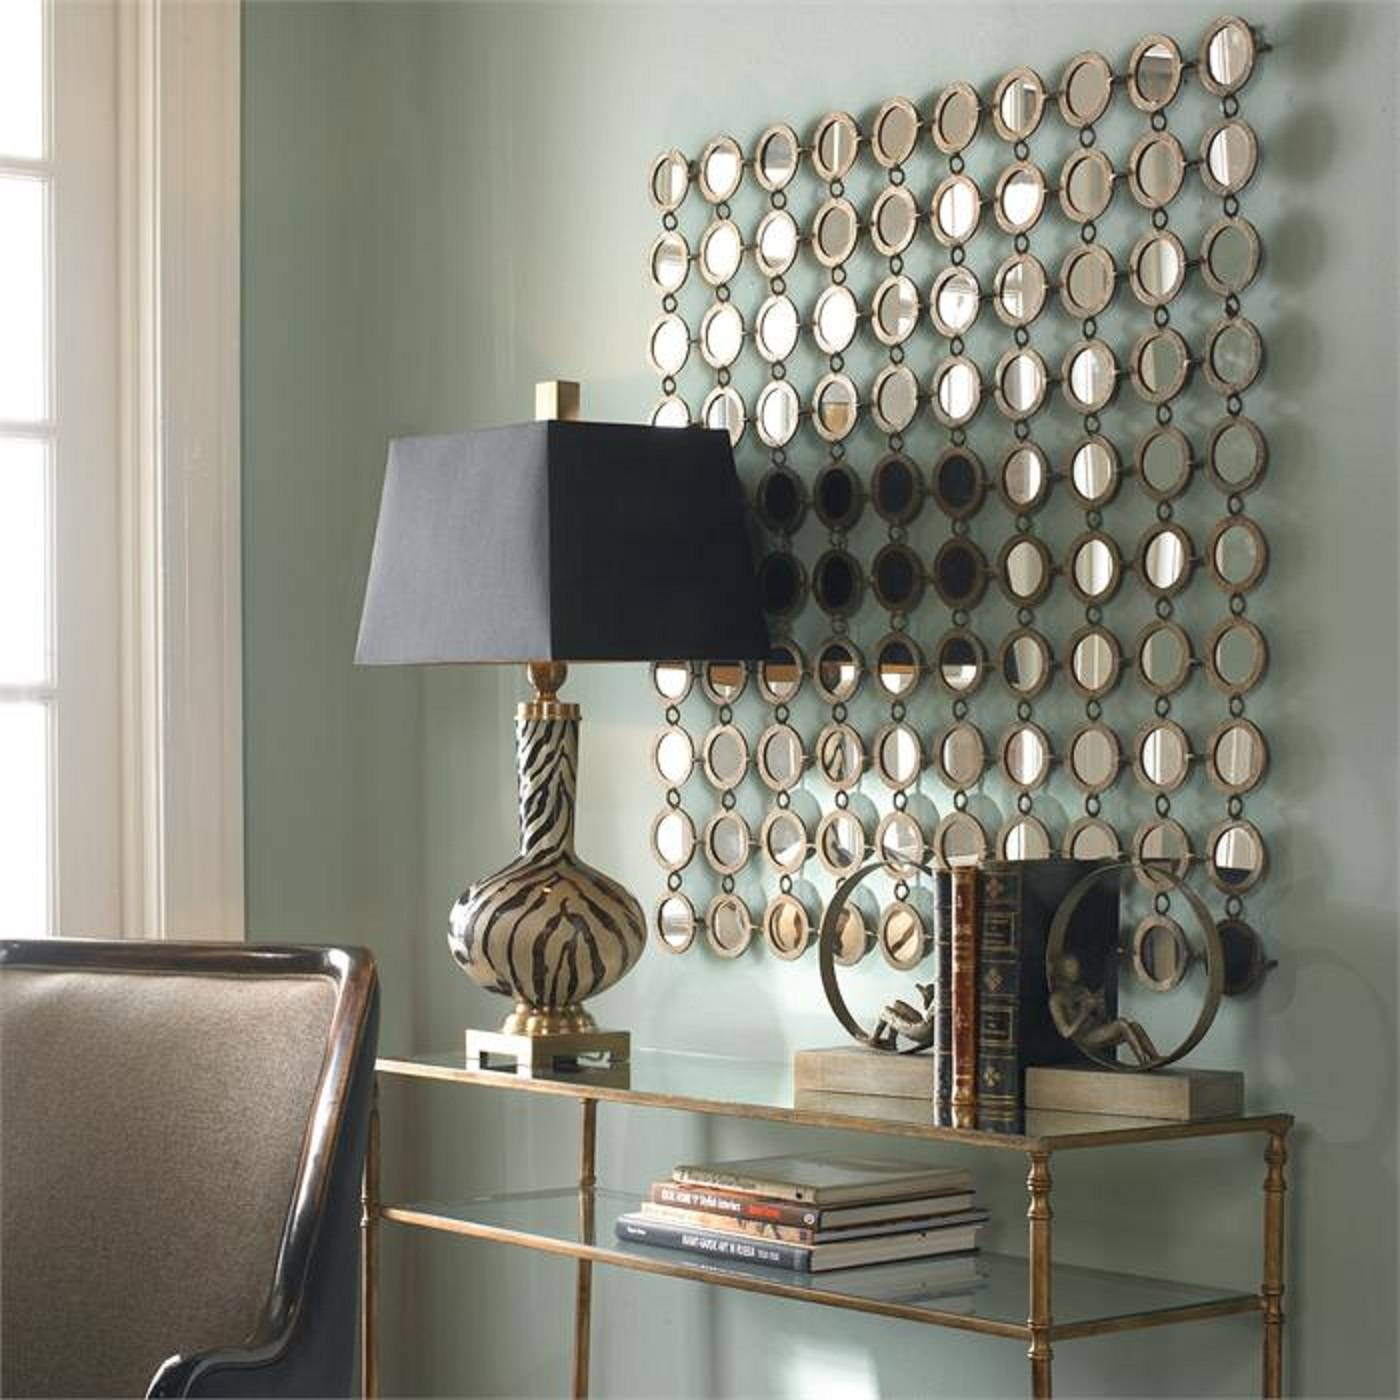 Deluxe Decorative Mirror On Mirrored Wall Decor Mirrored Wall Inside Latest Metal Wall Art With Mirrors (View 6 of 20)